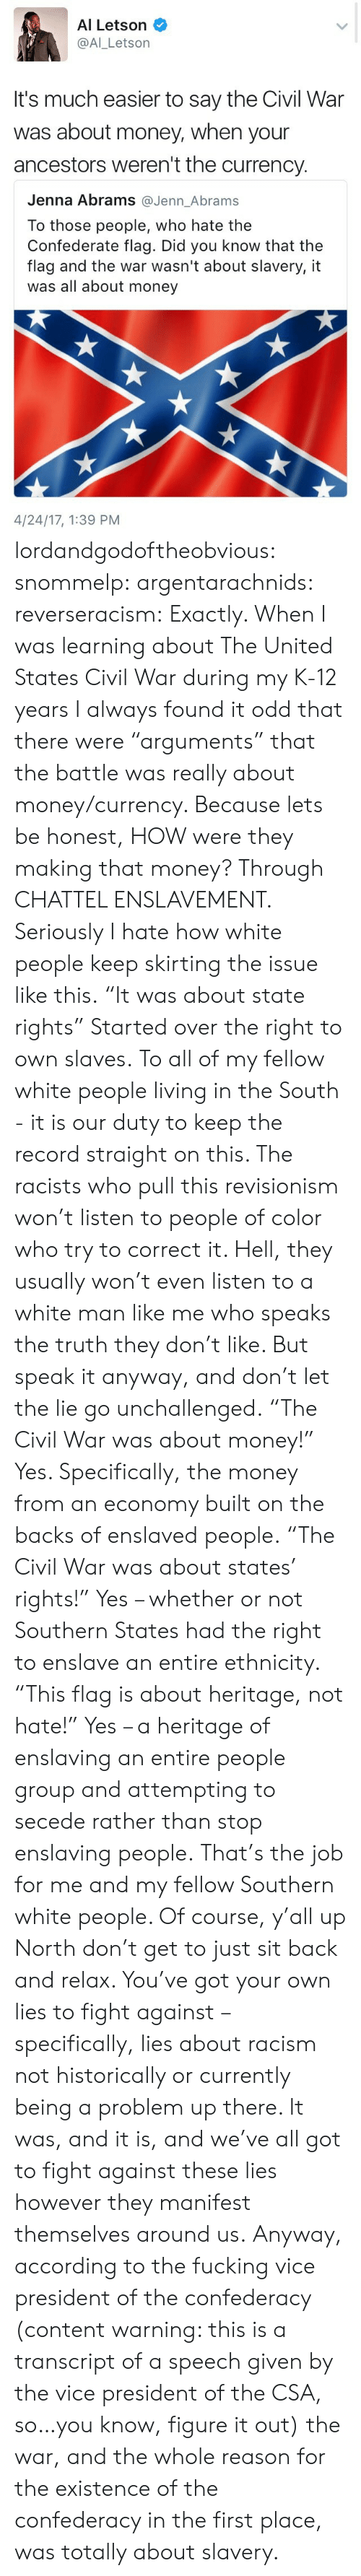 "Confederacy: Al Letson  @Al_Letson  It's much easier to say the Civil War  was about money, when your  ancestors weren't the currency   Jenna Abrams @Jenn_Abrams  To those people, who hate the  Confederate flag. Did you know that the  flag and the war wasn't about slavery, it  was all about money  4/24/17, 1:39 PM lordandgodoftheobvious:  snommelp:  argentarachnids:  reverseracism:  Exactly.   When I was learning about The United States Civil War during my K-12 years I always found it odd that there were ""arguments"" that the battle was really about money/currency.   Because lets be honest, HOW were they making that money? Through CHATTEL ENSLAVEMENT.  Seriously I hate how white people keep skirting the issue like this.  ""It was about state rights"" Started over the right to own slaves.  To all of my fellow white people living in the South - it is our duty to keep the record straight on this. The racists who pull this revisionism won't listen to people of color who try to correct it. Hell, they usually won't even listen to a white man like me who speaks the truth they don't like. But speak it anyway, and don't let the lie go unchallenged. ""The Civil War was about money!"" Yes. Specifically, the money from an economy built on the backs of enslaved people. ""The Civil War was about states' rights!"" Yes – whether or not Southern States had the right to enslave an entire ethnicity. ""This flag is about heritage, not hate!"" Yes – a heritage of enslaving an entire people group and attempting to secede rather than stop enslaving people. That's the job for me and my fellow Southern white people. Of course, y'all up North don't get to just sit back and relax. You've got your own lies to fight against – specifically, lies about racism not historically or currently being a problem up there. It was, and it is, and we've all got to fight against these lies however they manifest themselves around us.  Anyway, according to the fucking vice president of the confederacy (content warning: this is a transcript of a speech given by the vice president of the CSA, so…you know, figure it out) the war, and the whole reason for the existence of the confederacy in the first place, was totally about slavery."